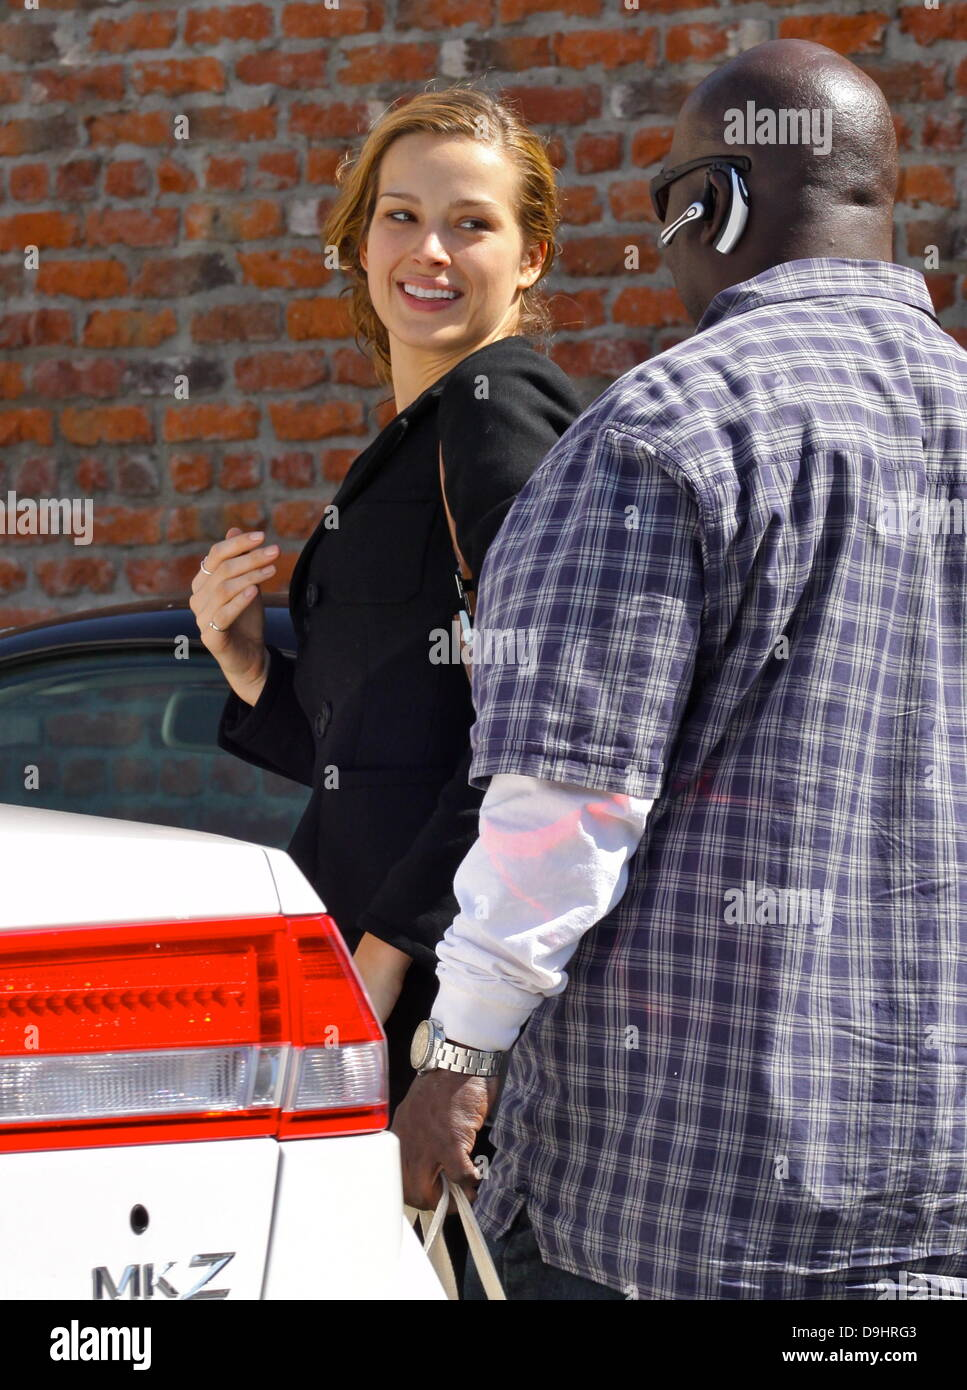 """Petra Nemcova  arrives at a dance studio to rehearse for """"Dancing With The Stars"""" Los Angeles, California - 22.03.11 Stock Photo"""